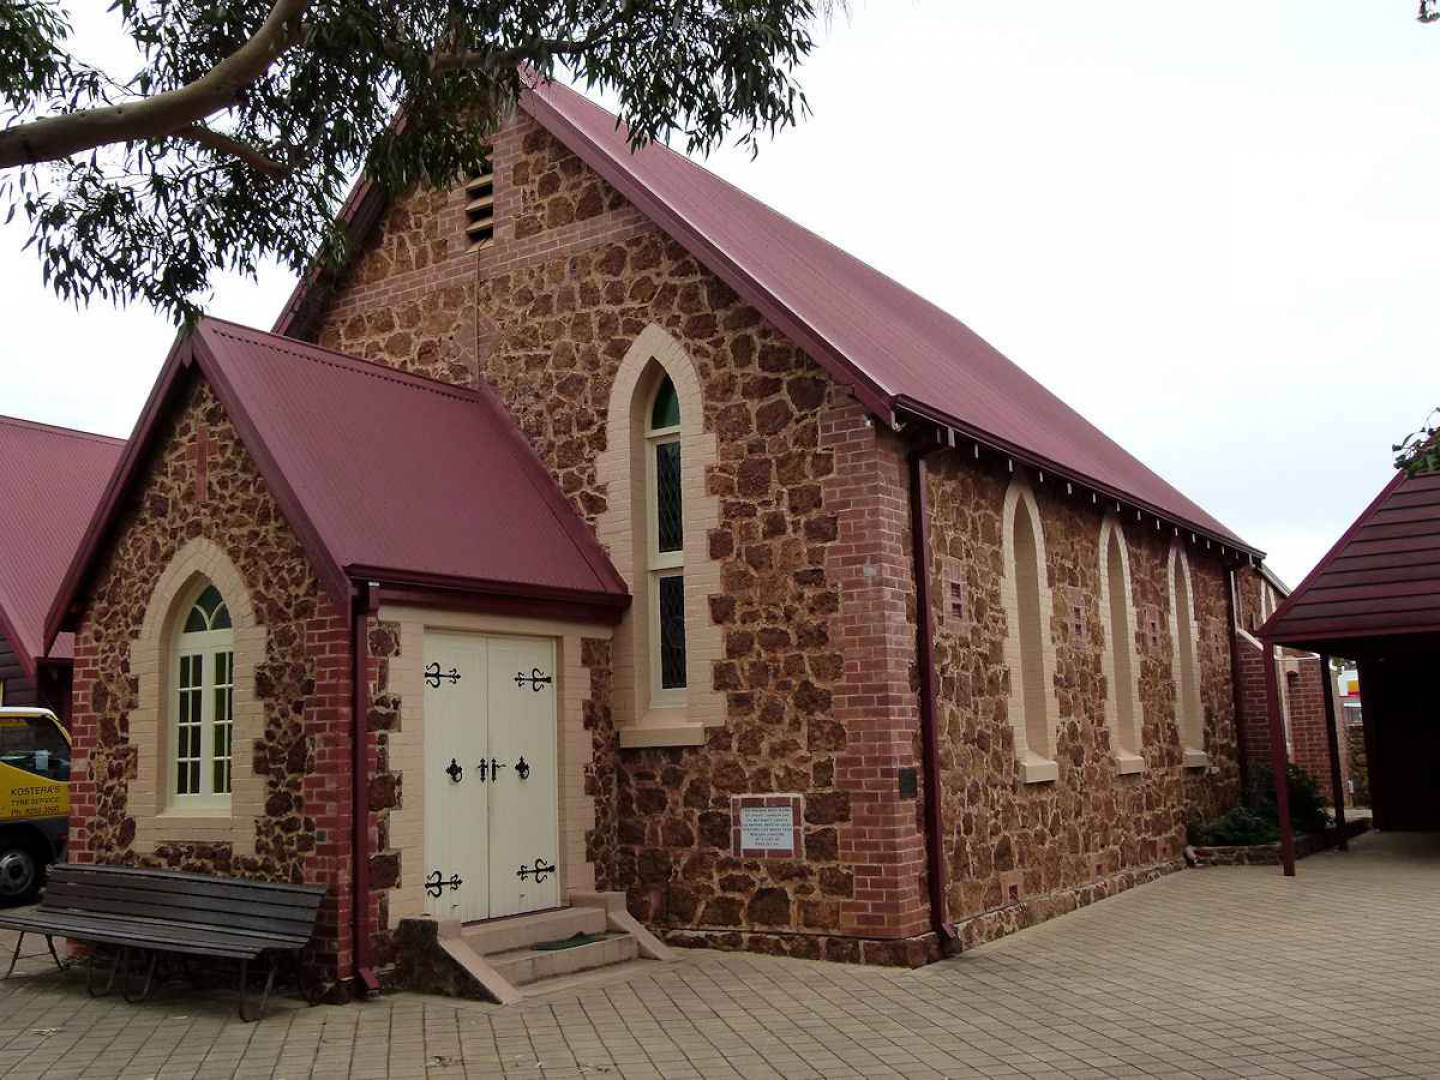 Kalamunda Uniting Church - Former